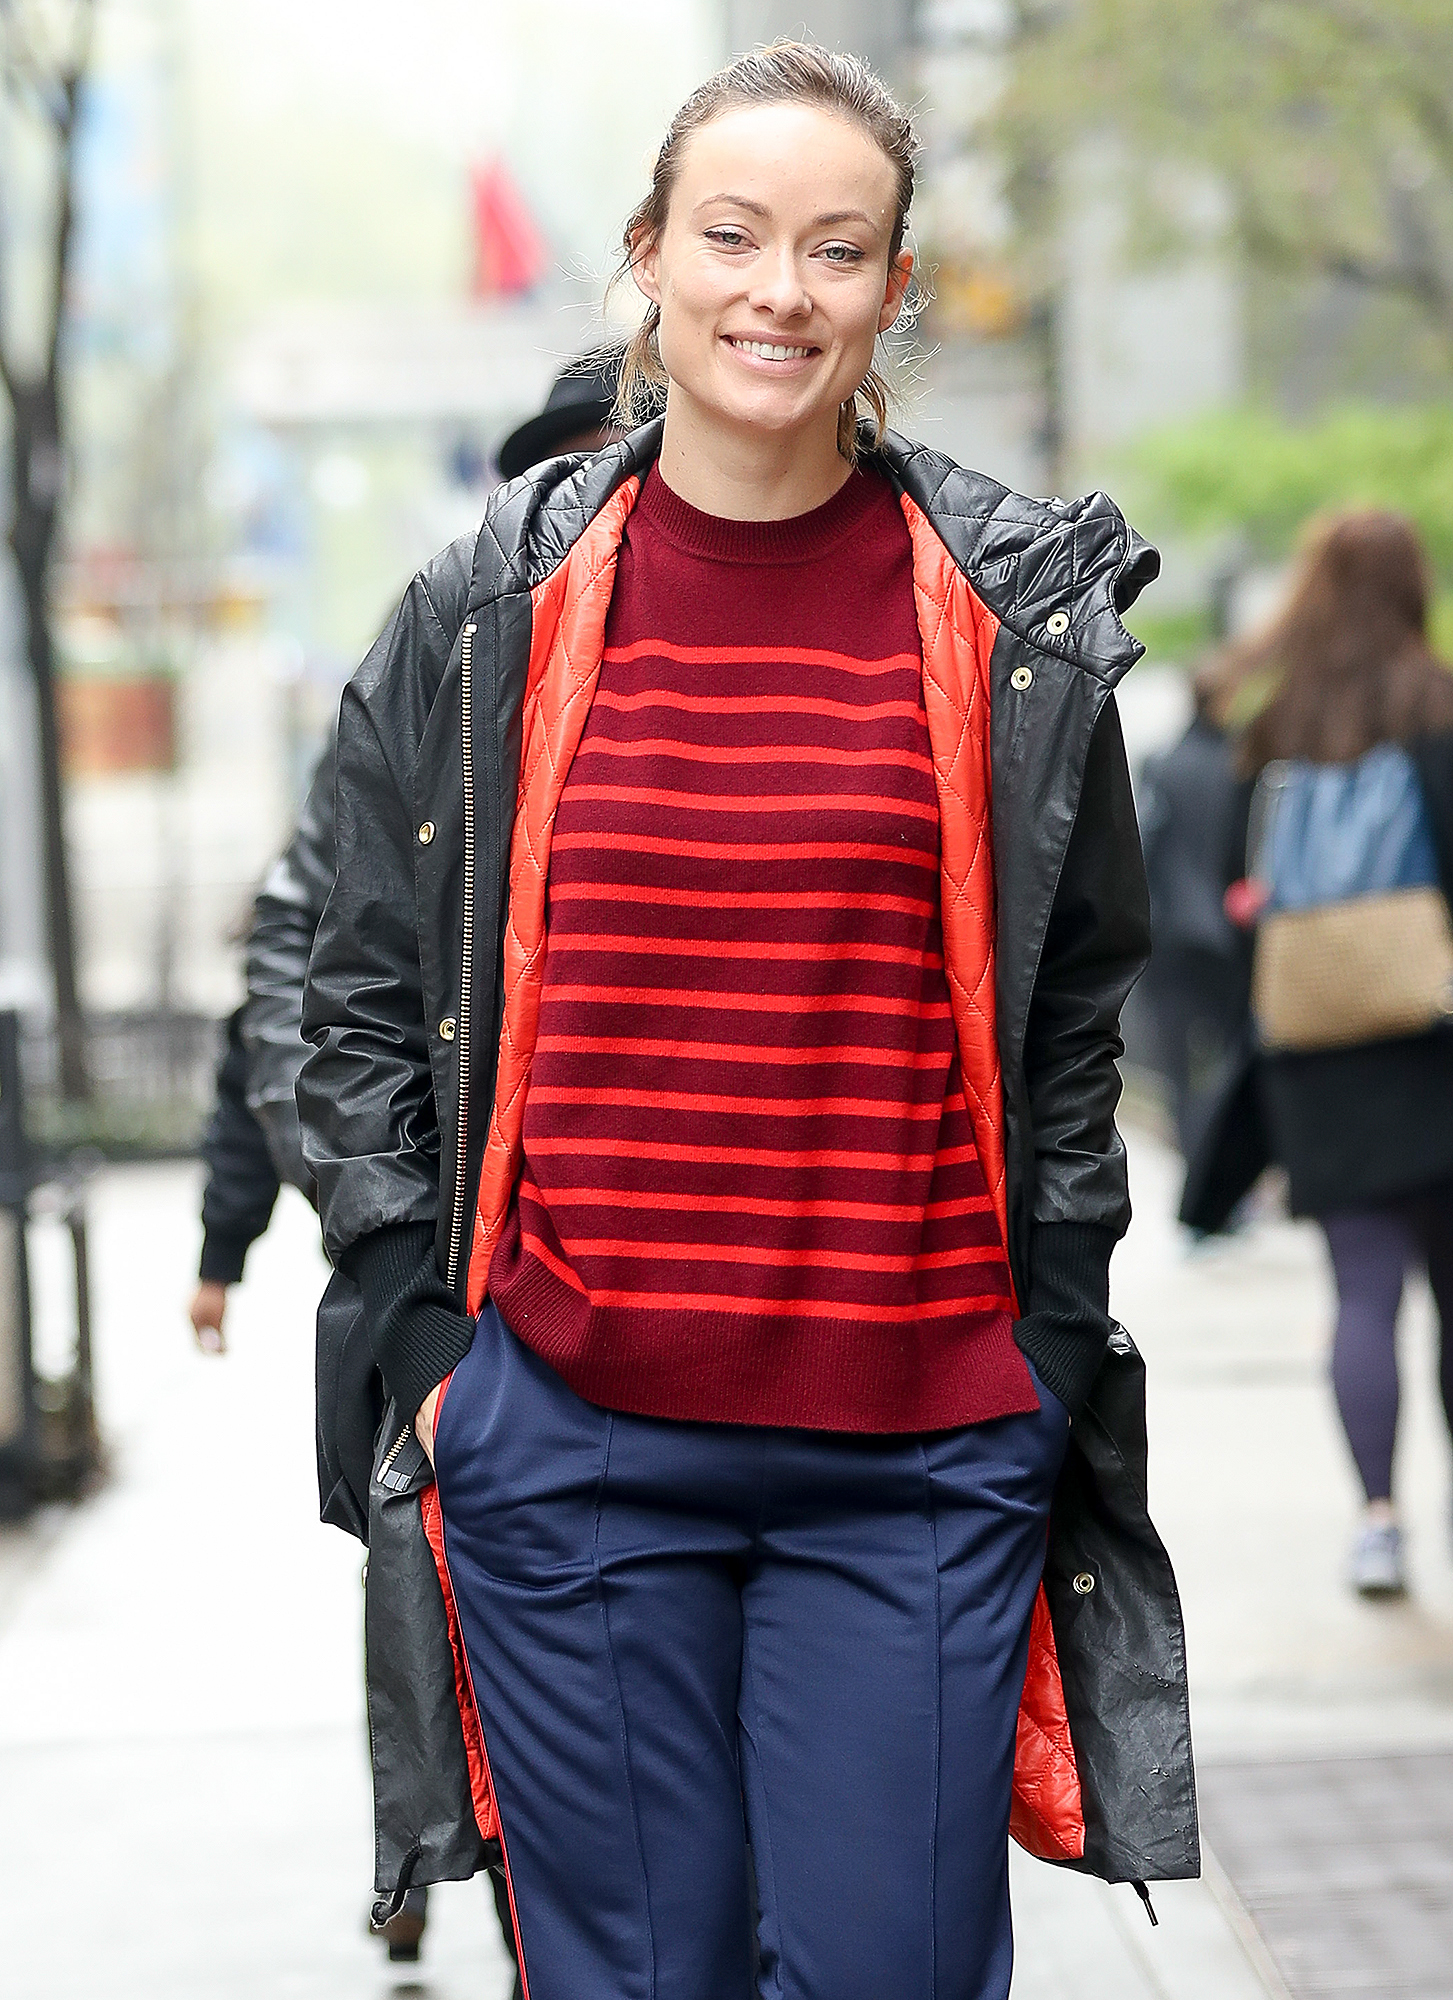 EXCLUSIVE: Olivia Wilde looks radiant while makeup free as she walks around in Midtown, New York City